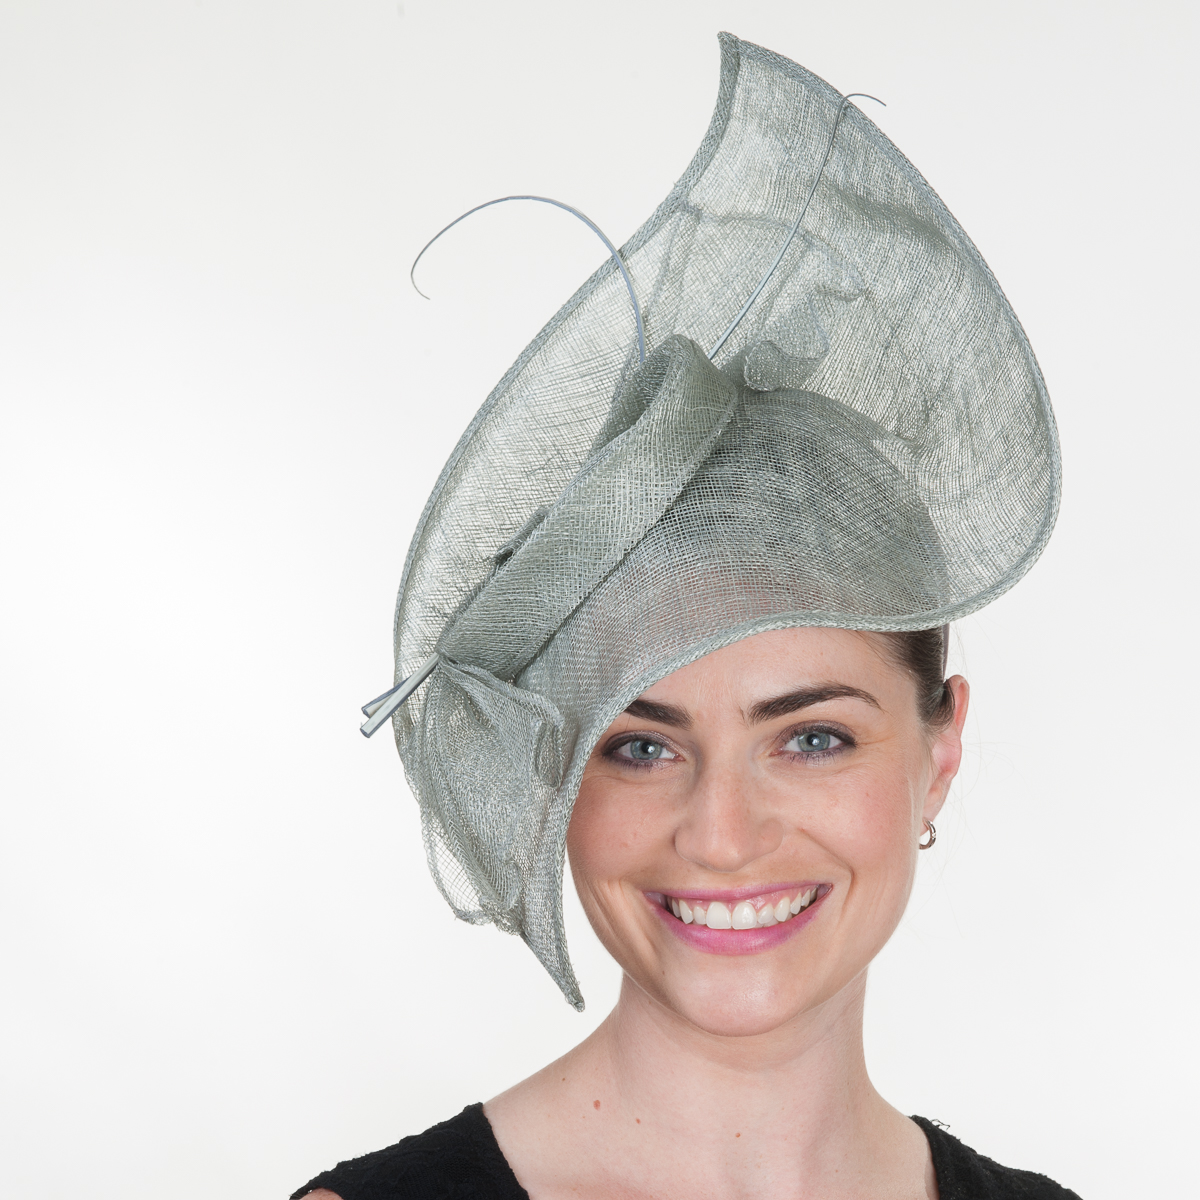 Silver Moden Sinamay Headband Fascinator Cocktail Hats